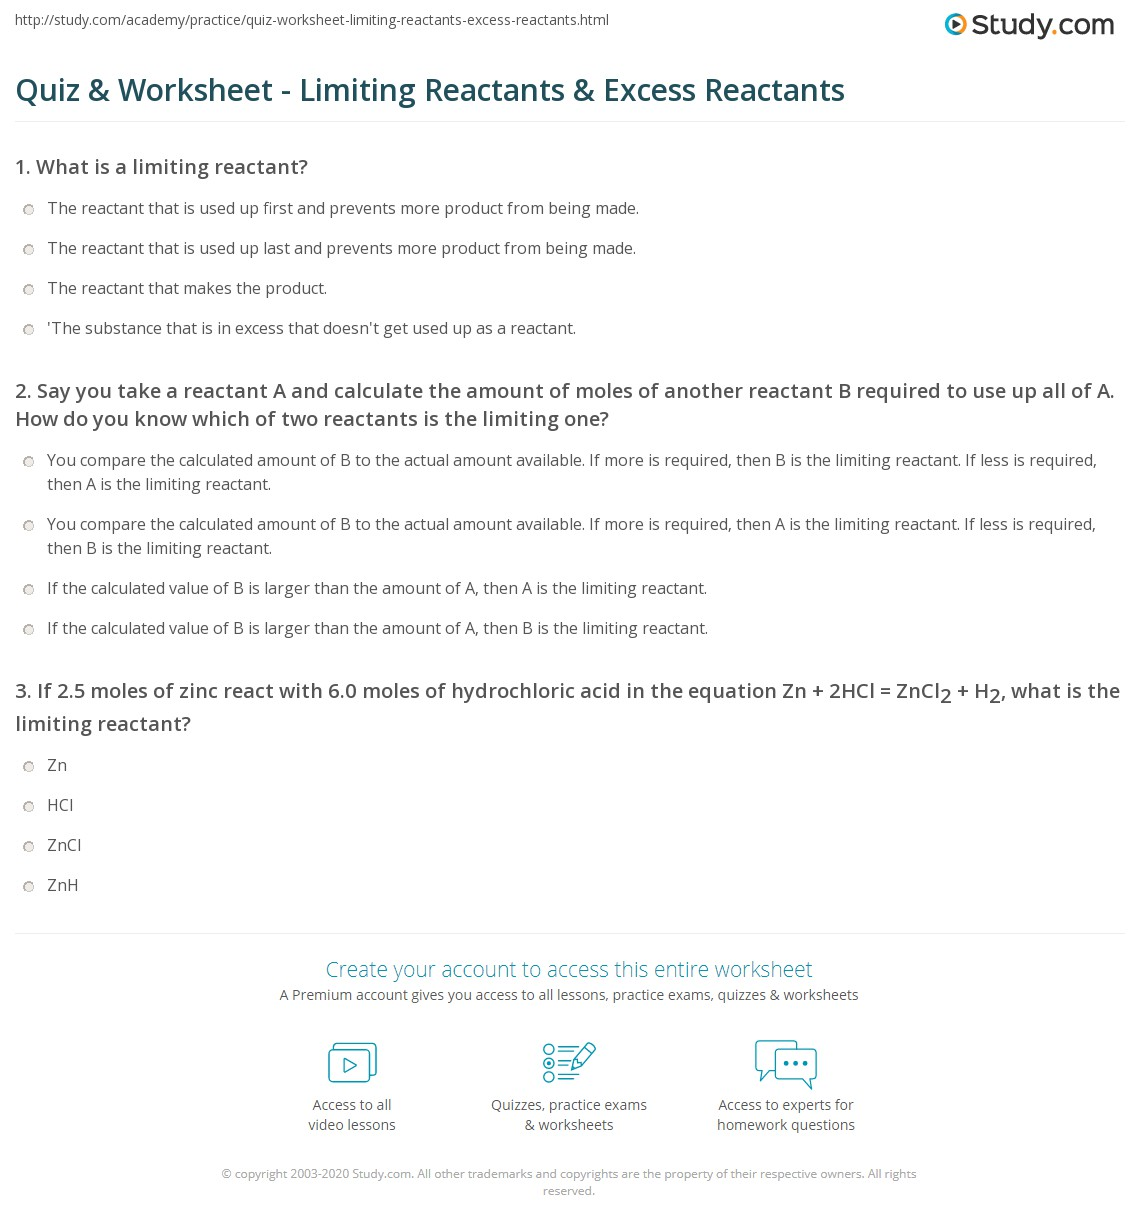 Quiz & Worksheet  Limiting Reactants & Excess Reactants  Studycom